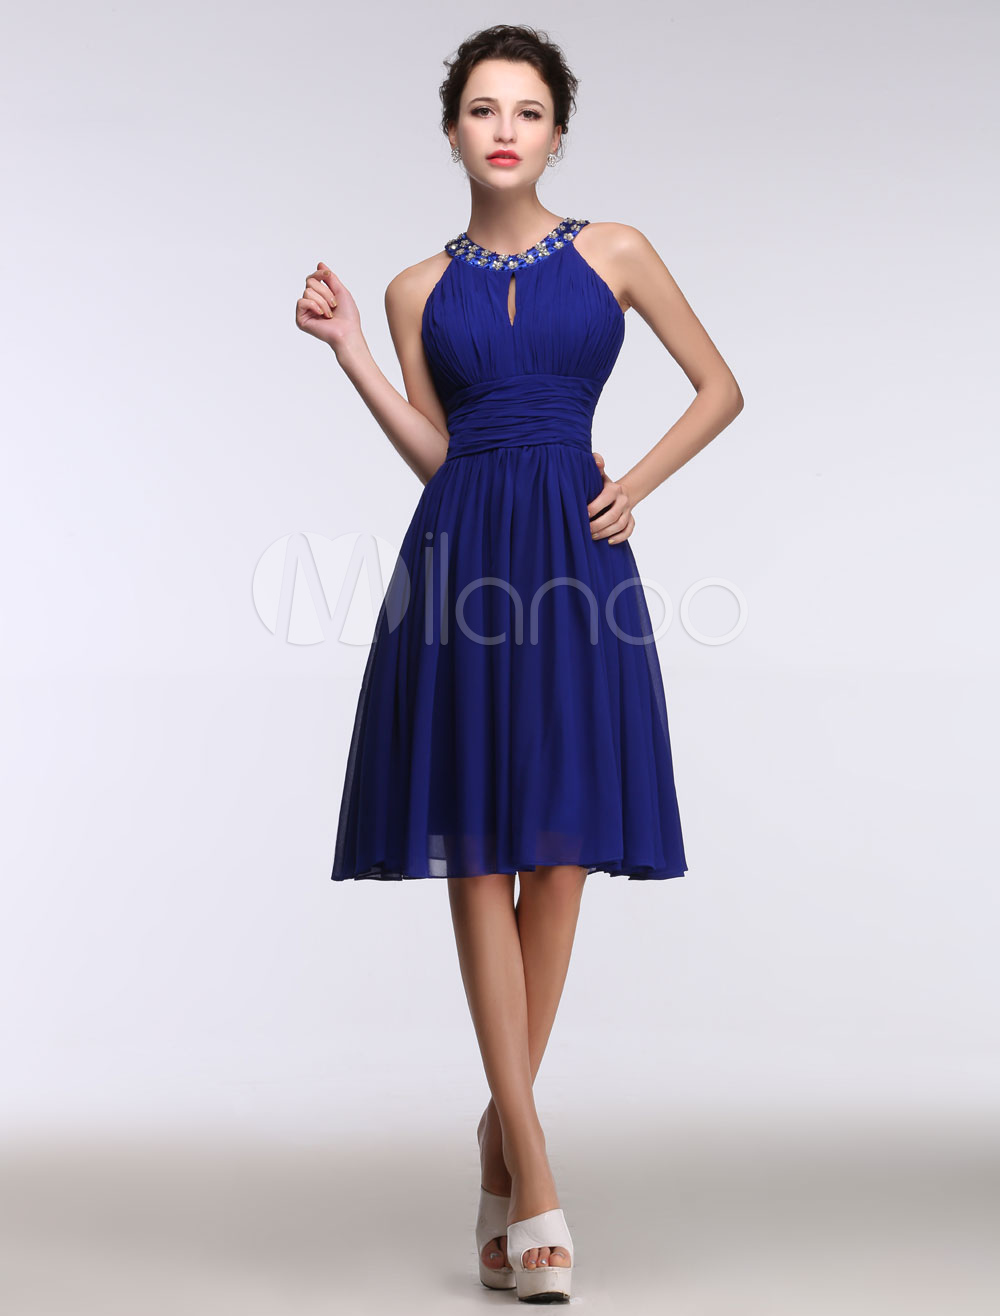 Buy Blue Cocktail Dress Sleeveless A Line Prom Dress Beading Keyhole Crew Neck Pleated Short Homecoming Dress for $128.69 in Milanoo store